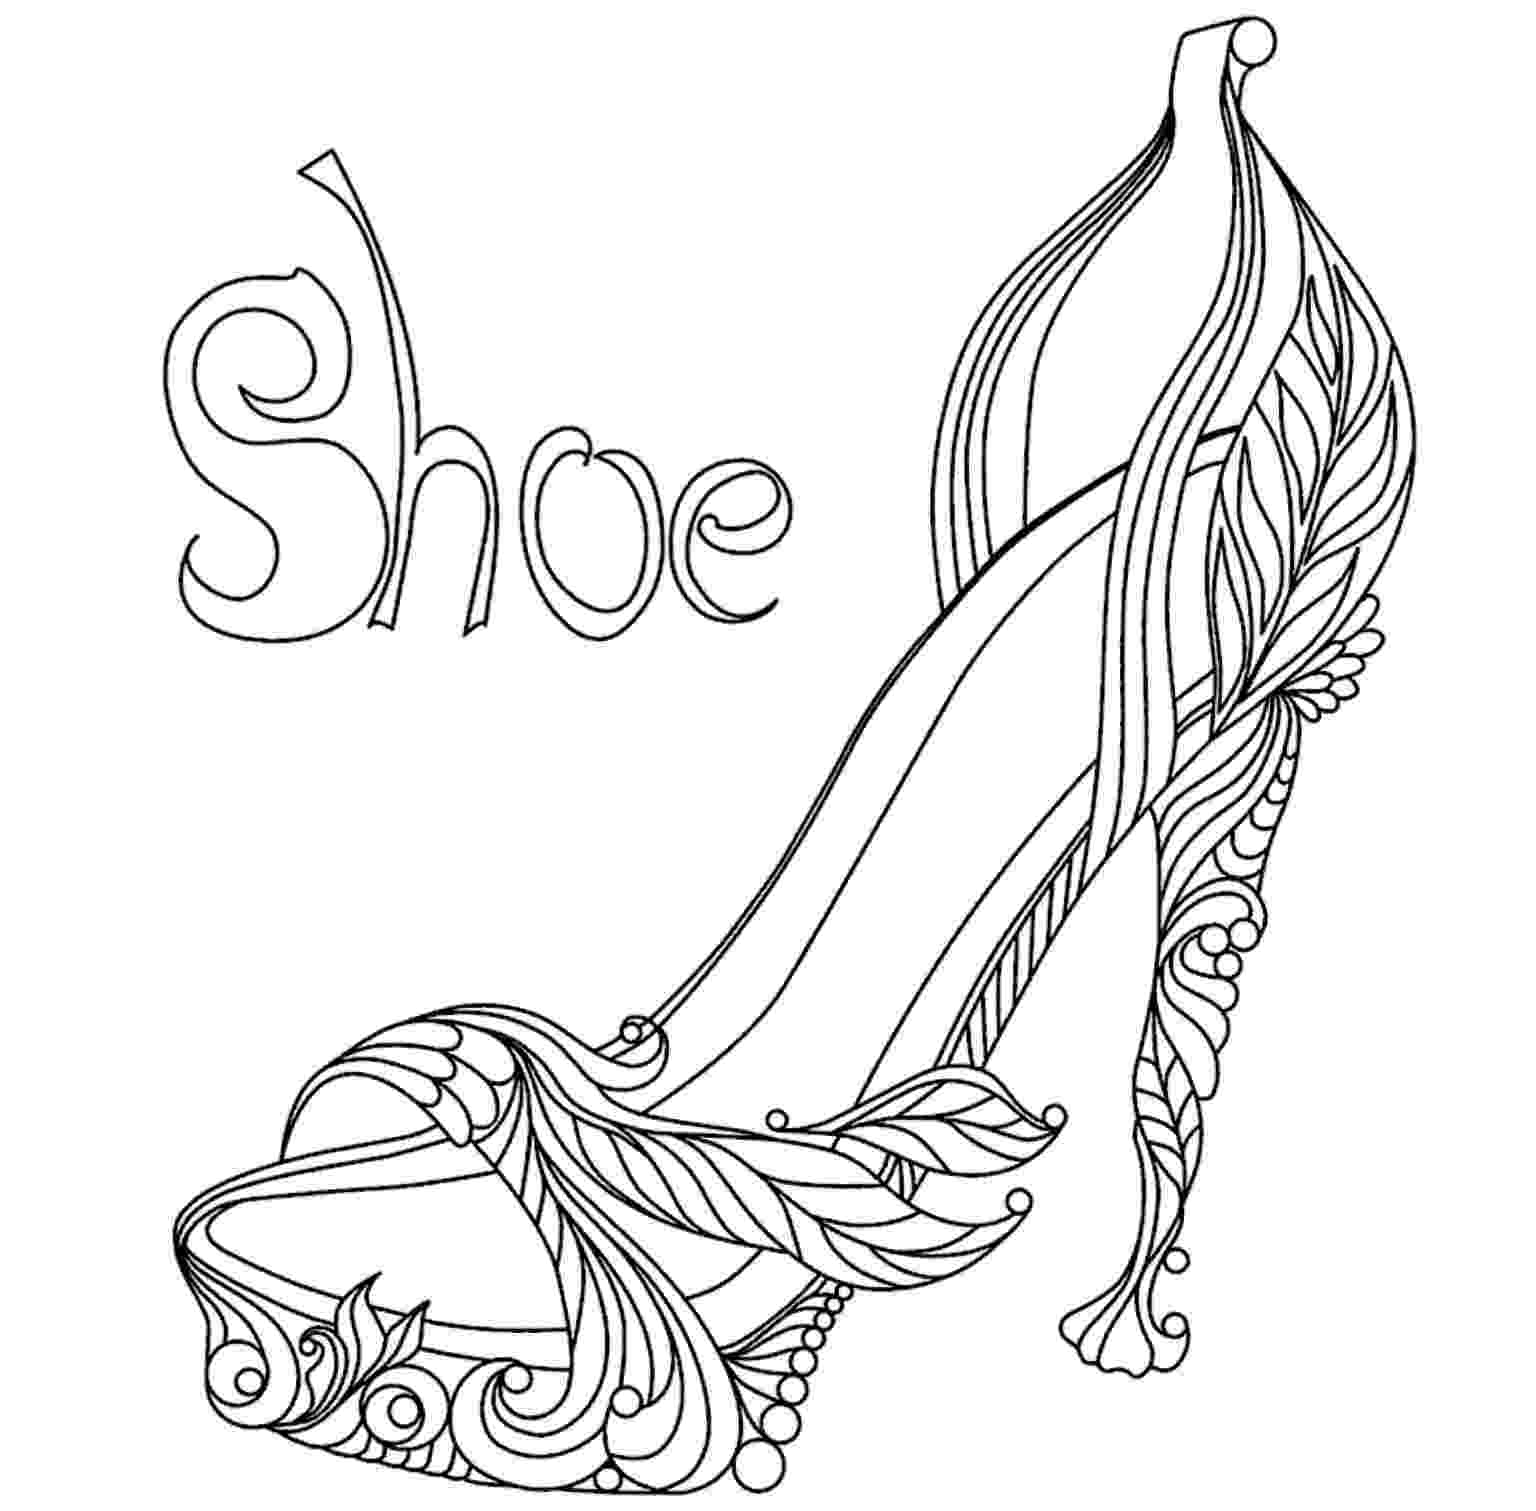 shoes for coloring printable shoe coloring page from freshcoloringcom shoe shoes for coloring